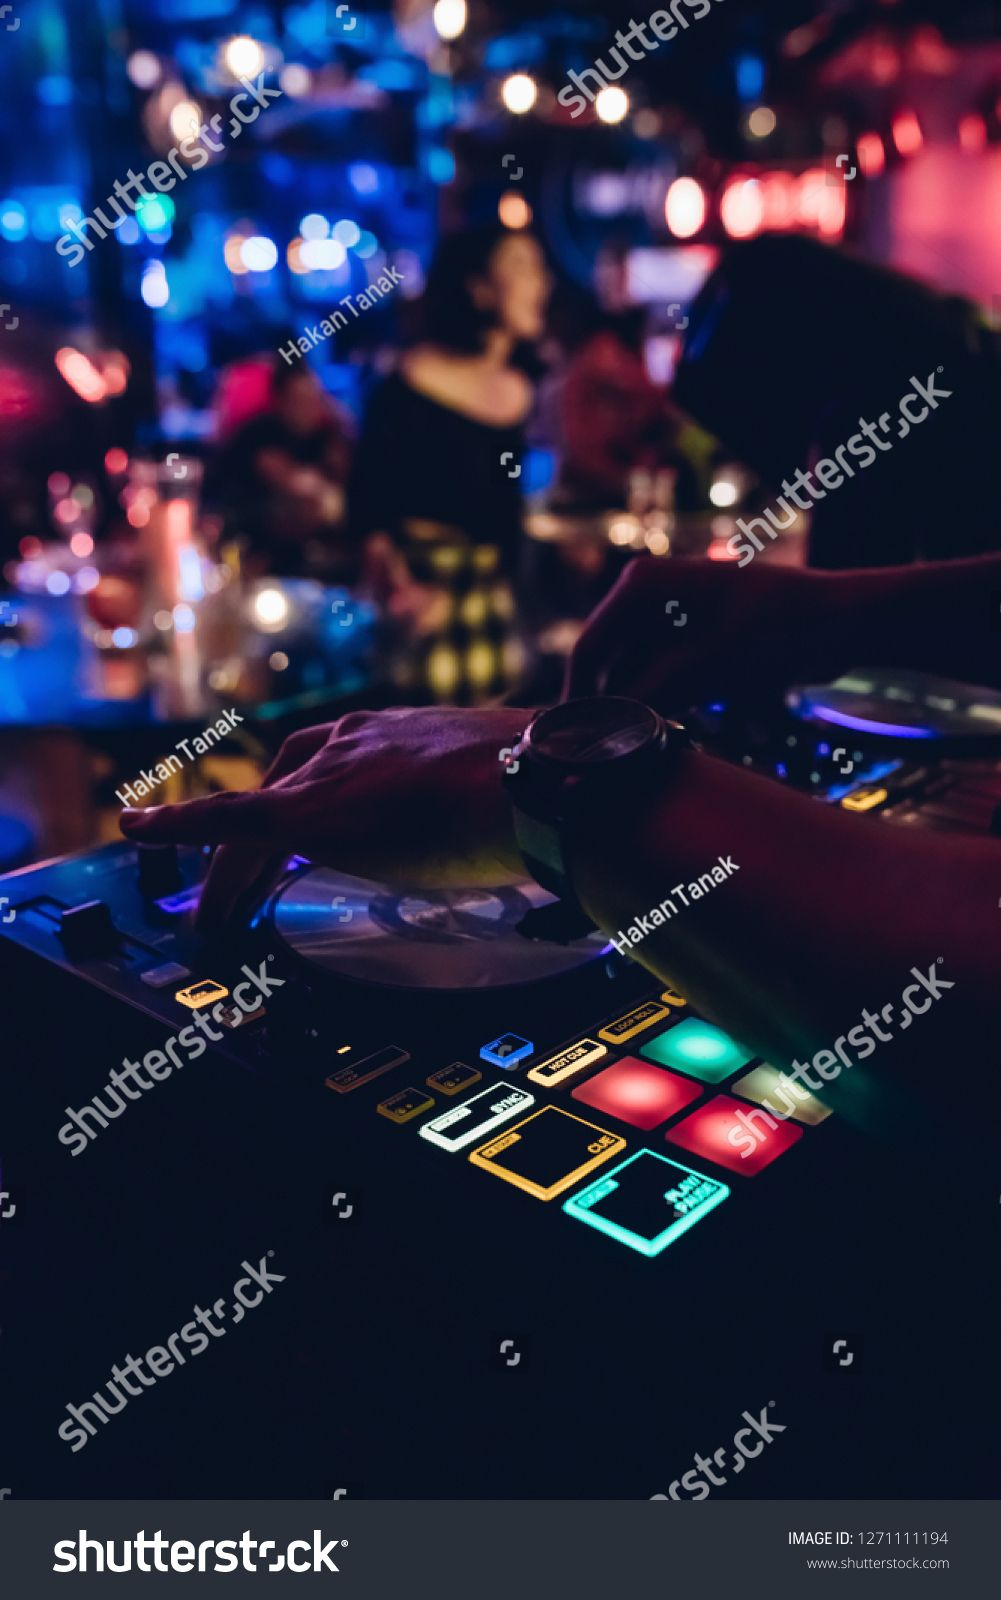 DJ plays live set and mixing music on turntable console at stage in the night club. Disc Jokey Hands on a sound  #Ad , #Affiliate, #console#turntable#stage#club